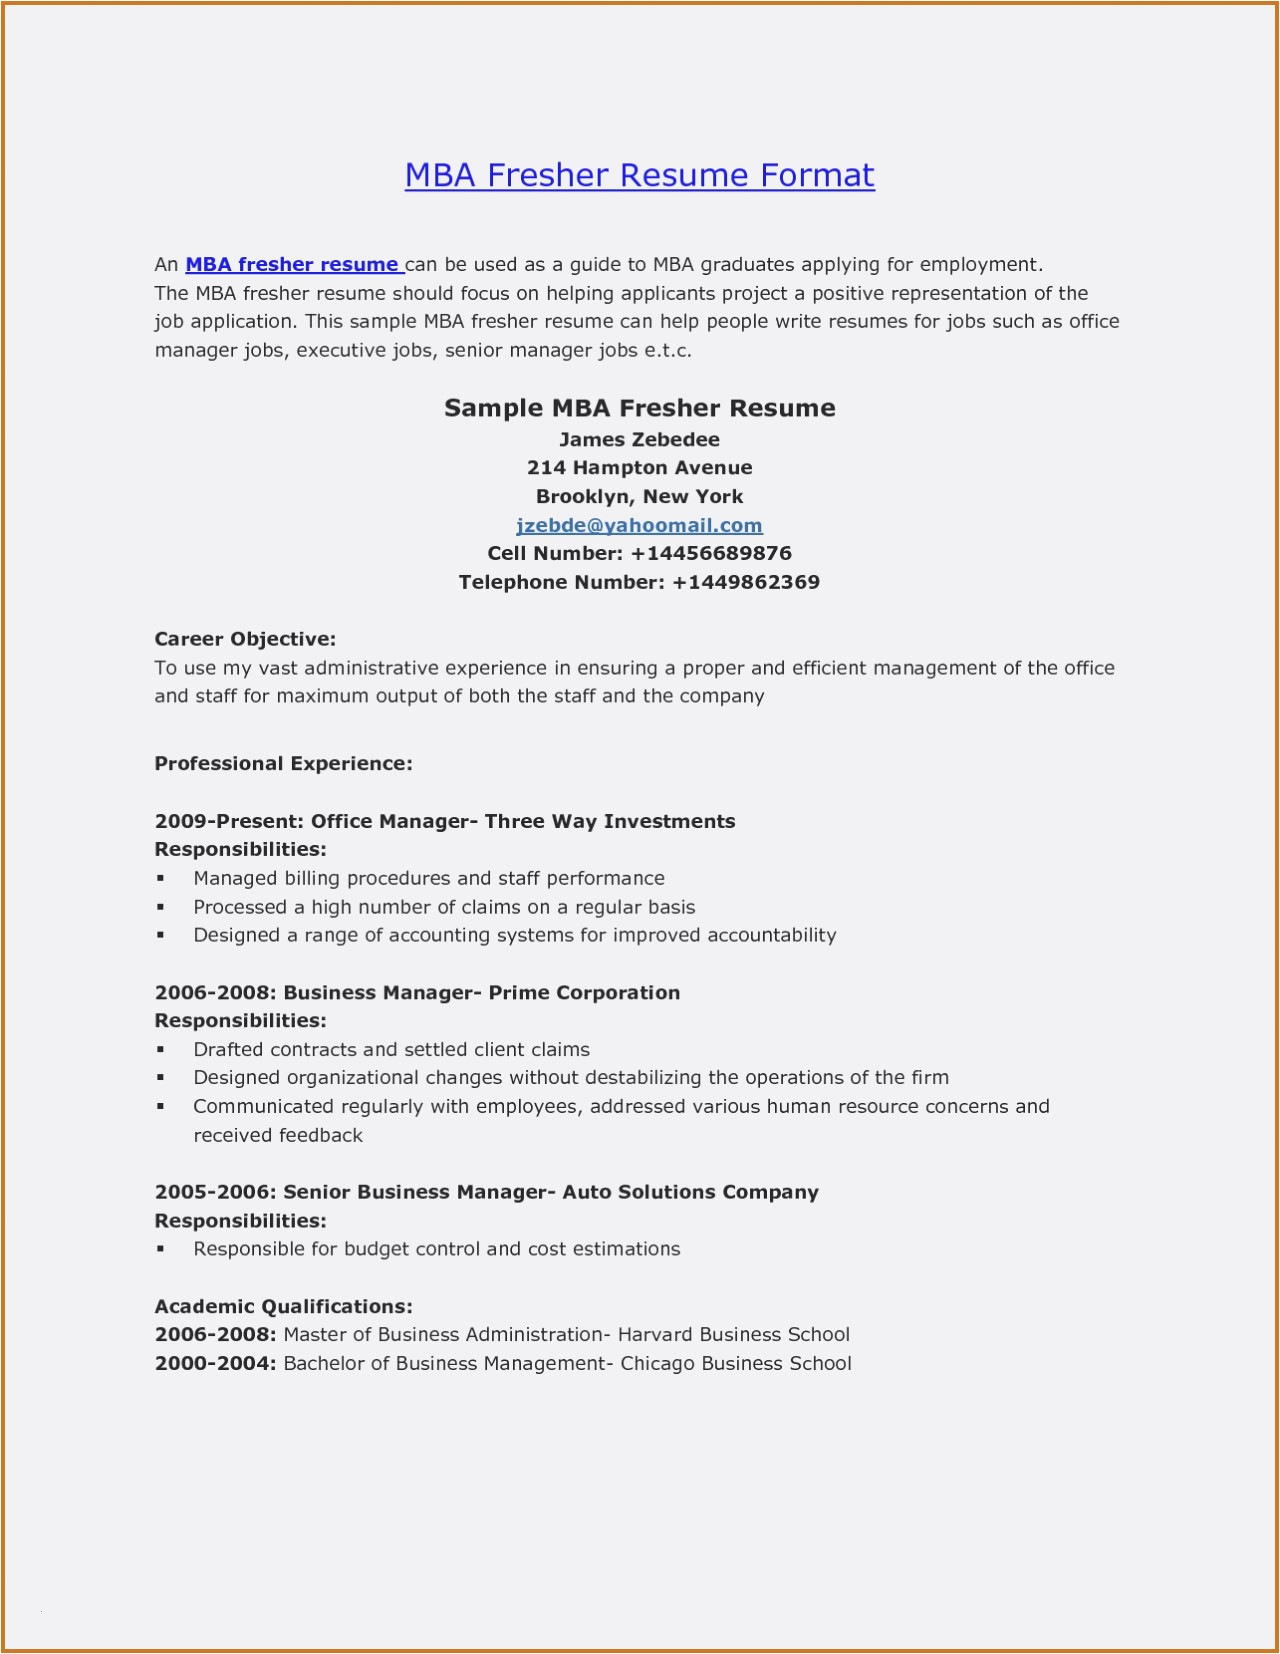 Hbs Resume Template - Mba Application Resume Template Inspirational Inspirierende 33